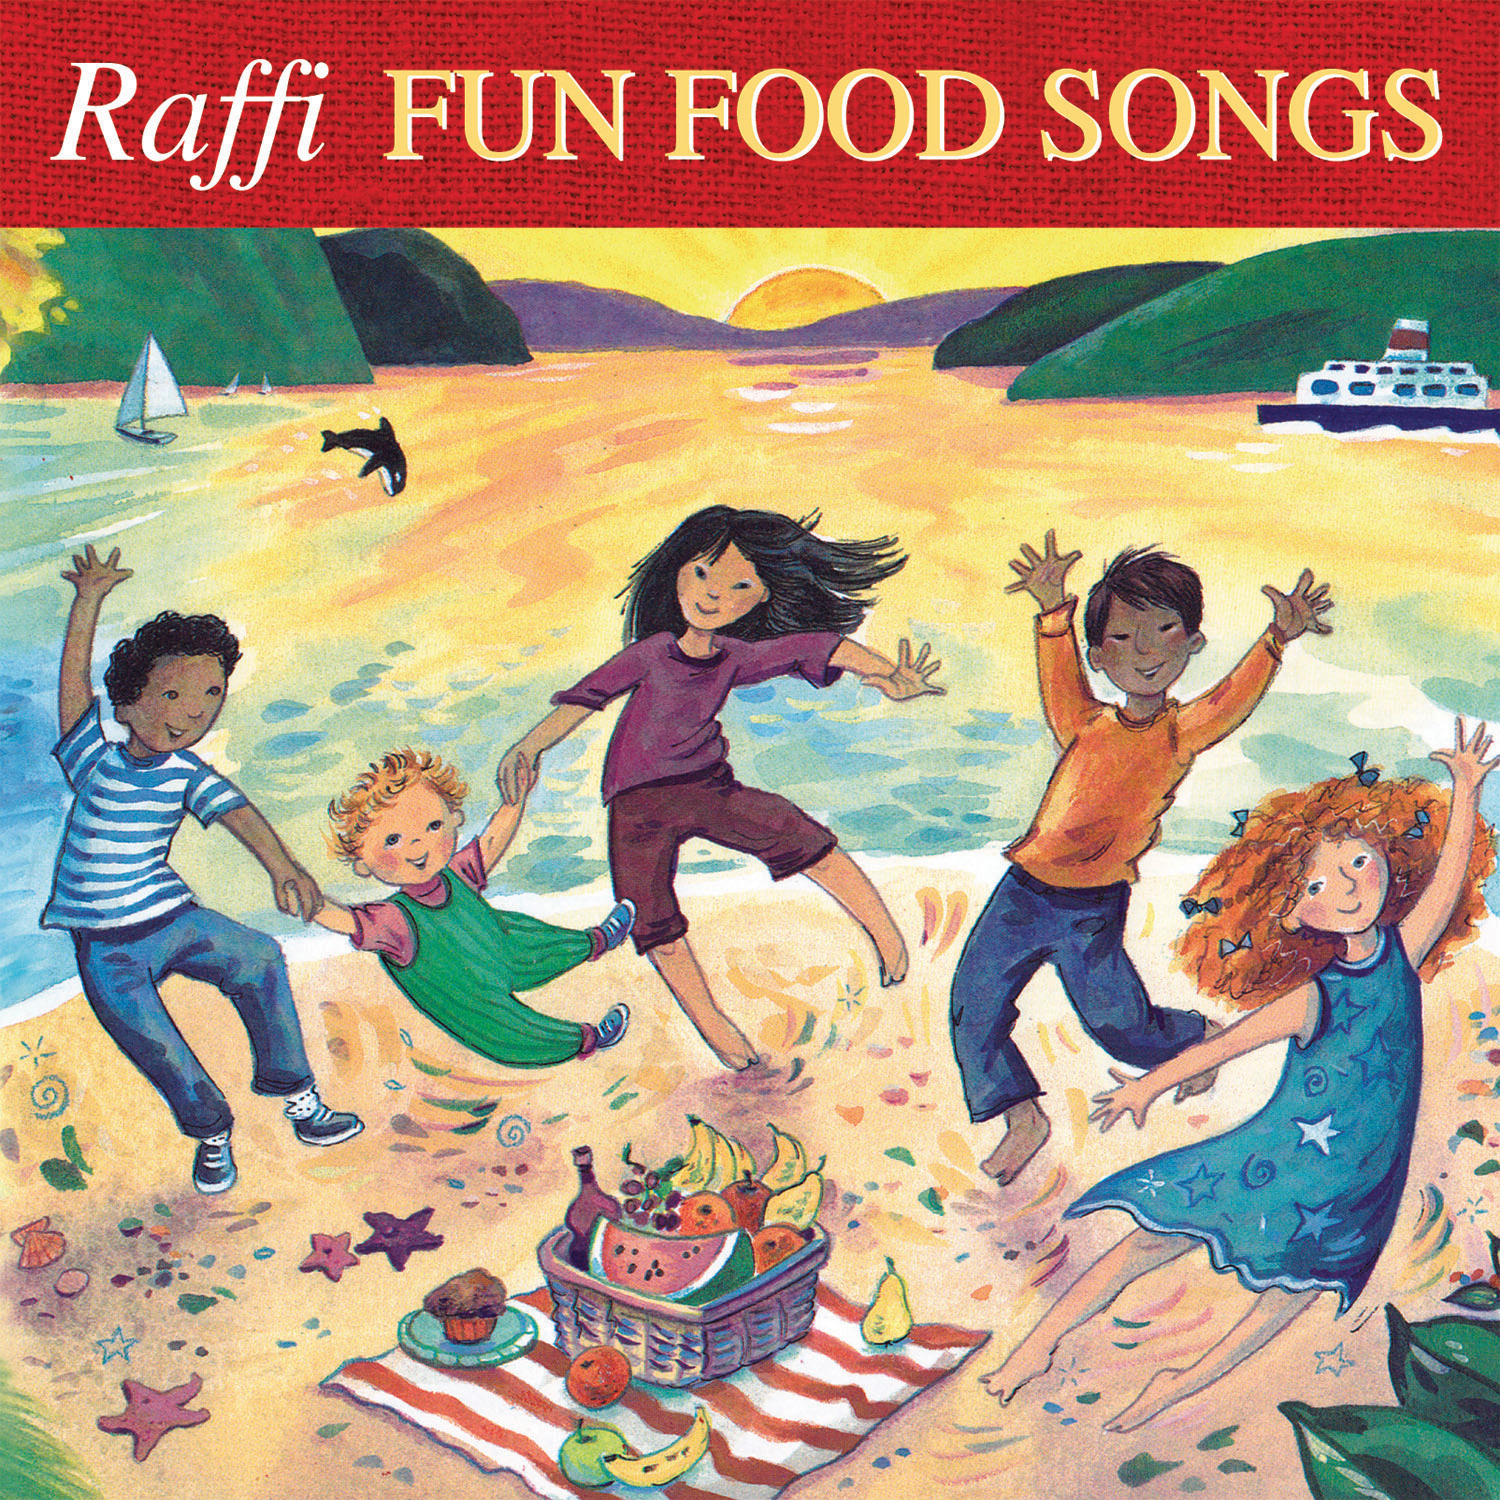 Raffi's Fun Food Songs To Be Released November 12